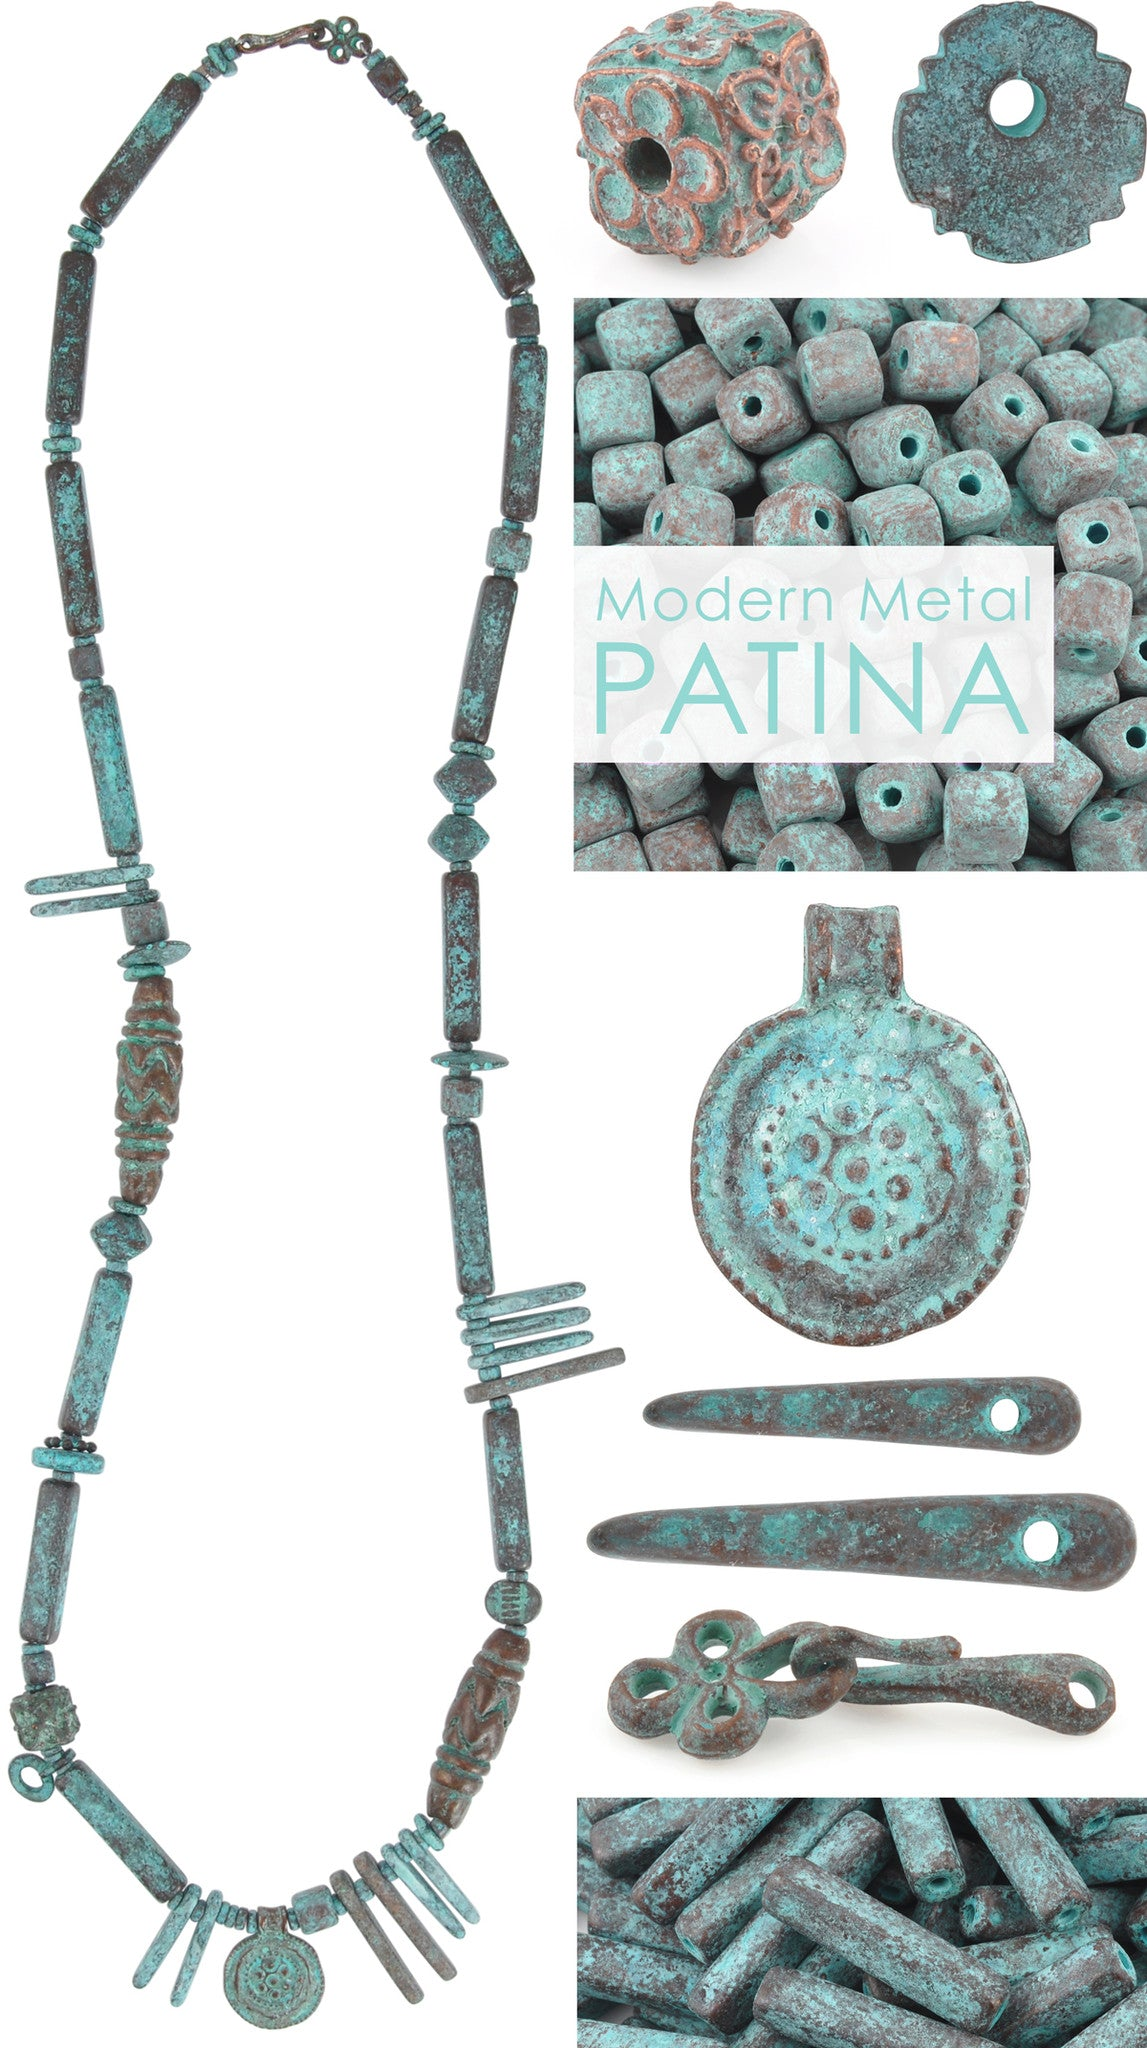 Modern Metal Patina Necklace Blog Tamara Scott Designs